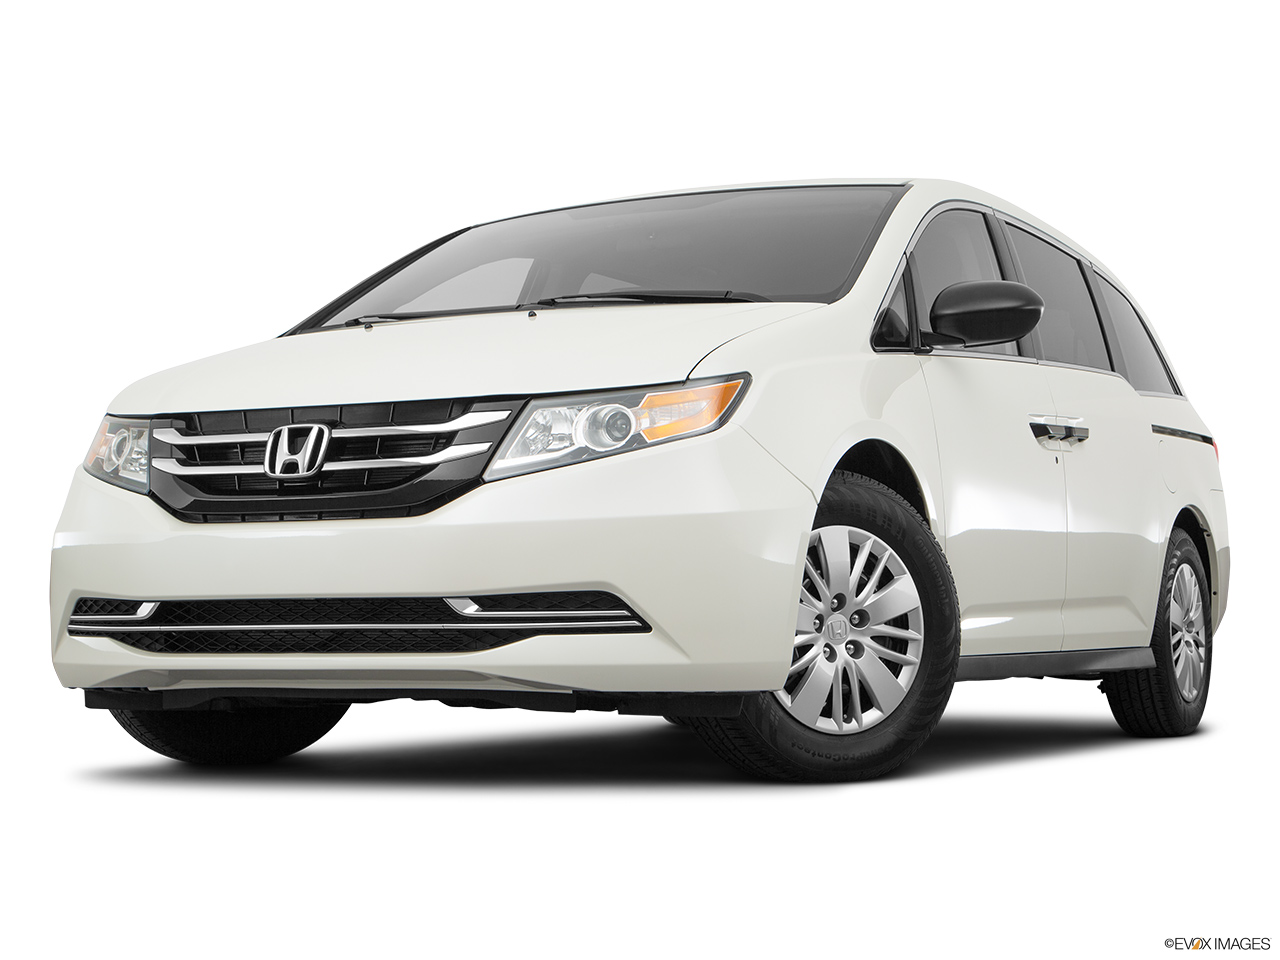 2017 honda odyssey prices in saudi arabia gulf specs. Black Bedroom Furniture Sets. Home Design Ideas